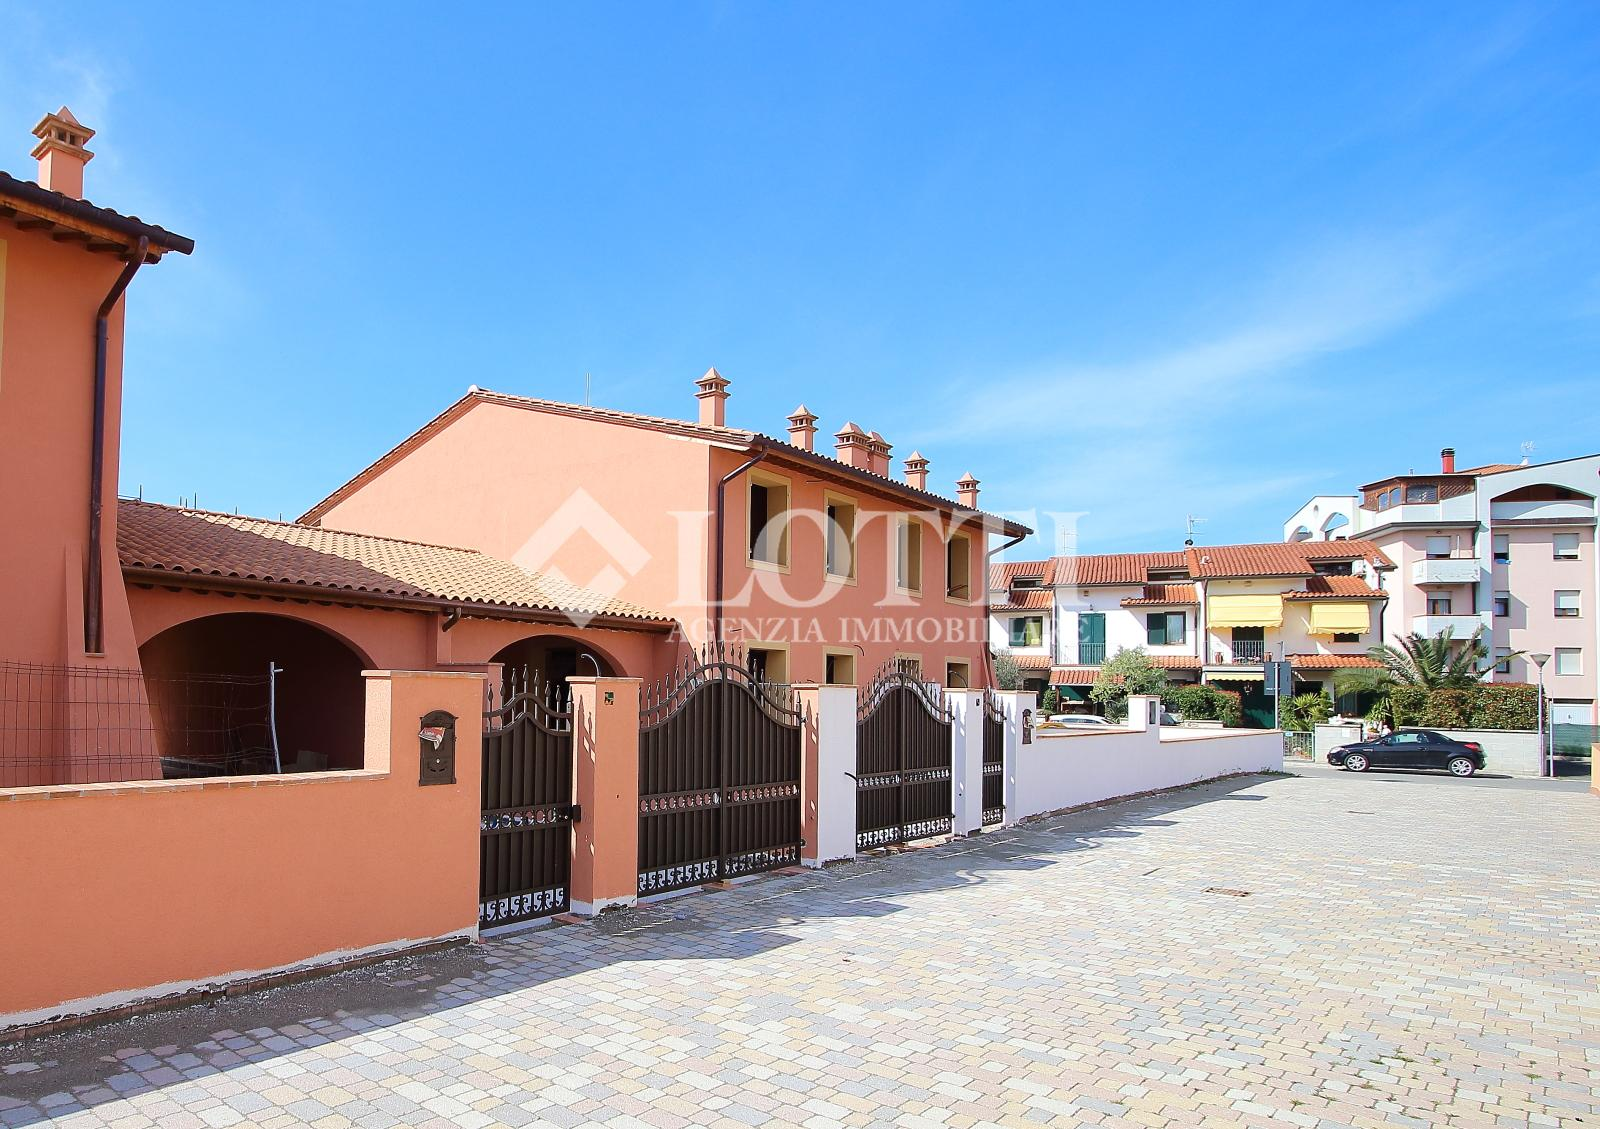 Semi-detached house for sale in Calcinaia (PI)